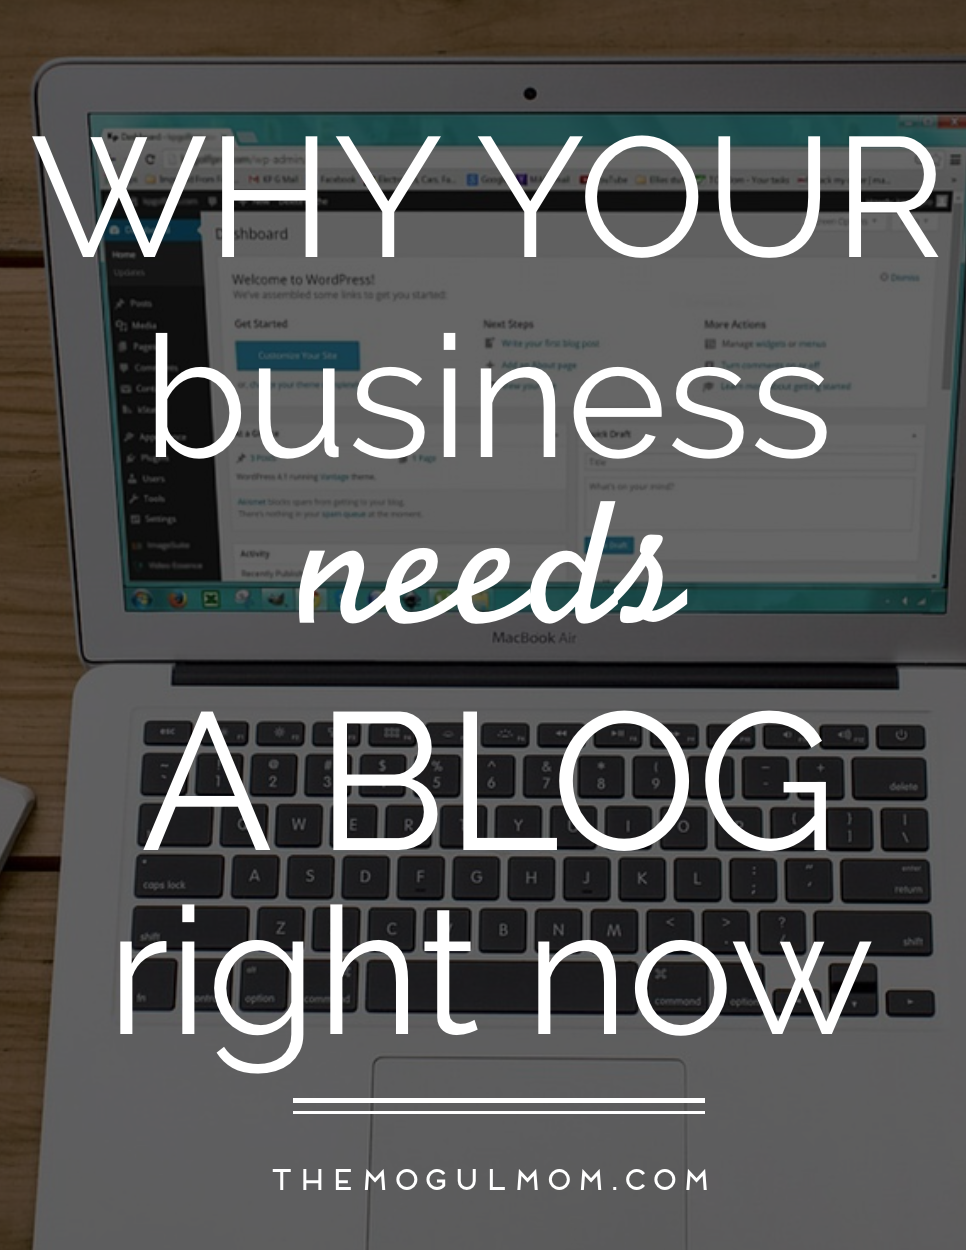 Why Your Business Needs A Blog Now